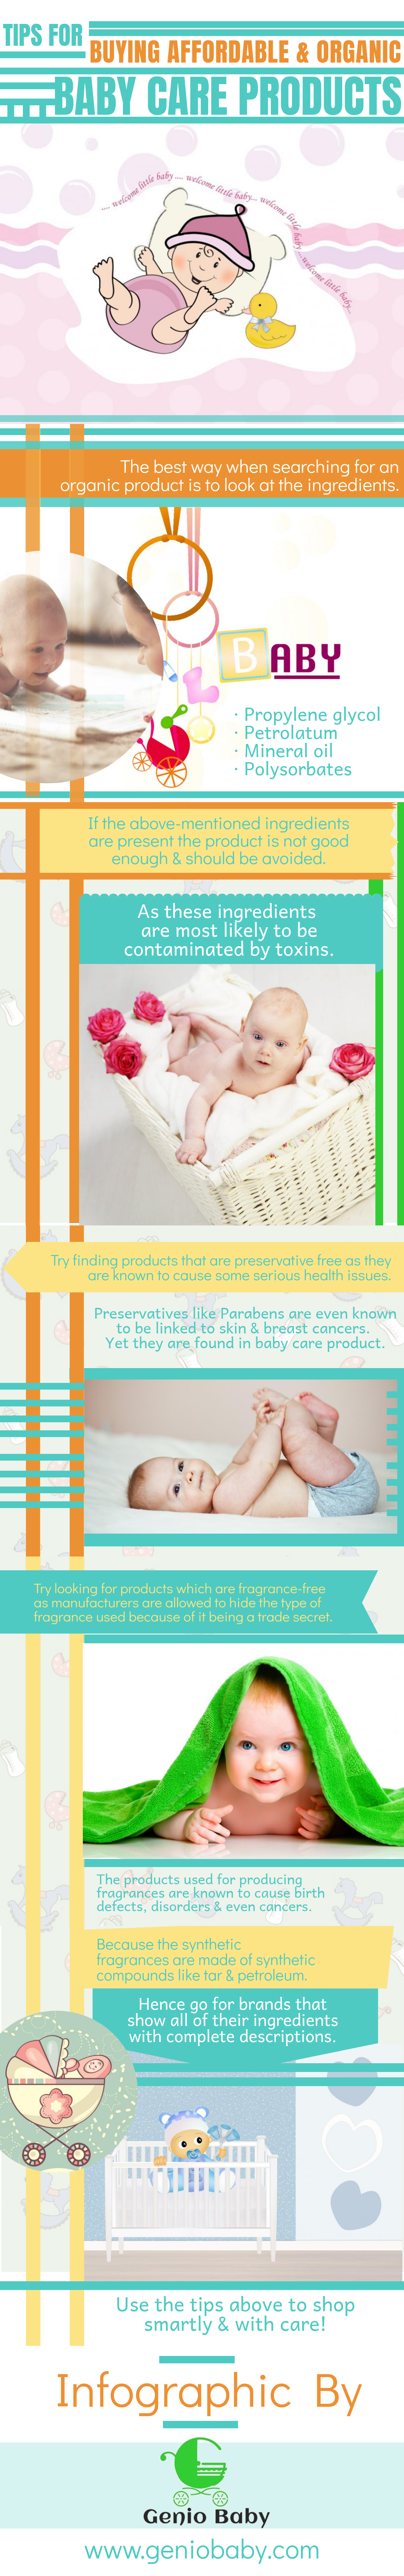 Tips for Buying Affordable & Organic Baby Products